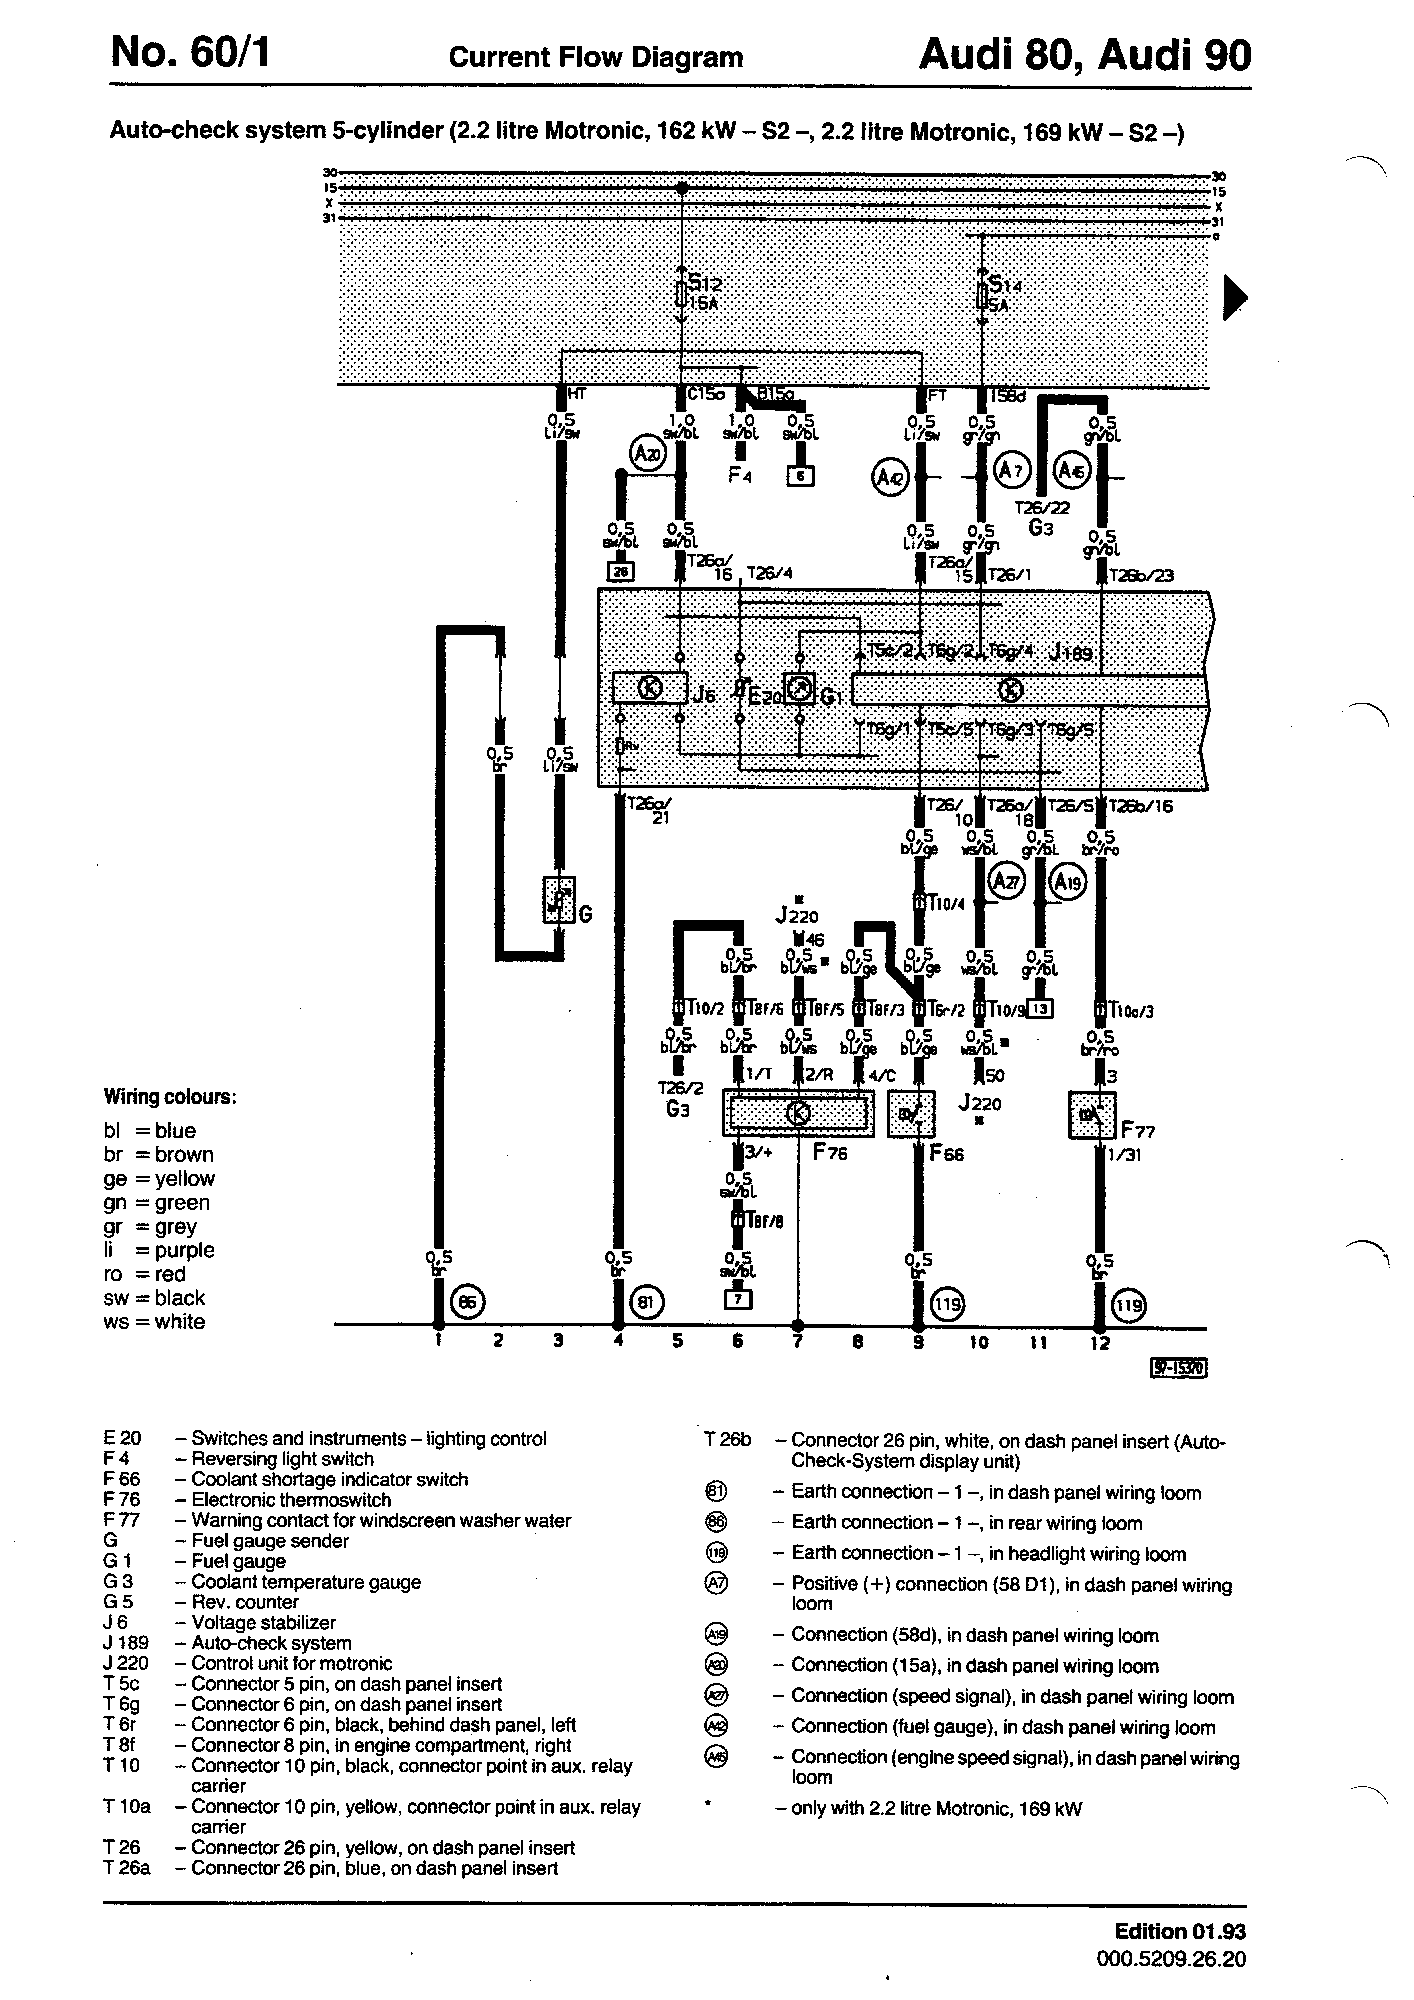 659857 New Member Strange Problem further 1995 Honda Civic Fuse Box Diagram additionally 1007265 Wiring Diagram 1951 F 1 A additionally 1143 Hks Grounding Wire Kit Purple likewise 12 610VDC Br 3412 10236 BTU Br DC Air Conditioner  pressor And Controller Br  pressor 264 Lbs 12kg Controller 44 Lbs 2kg p 152. on alternator lighting system